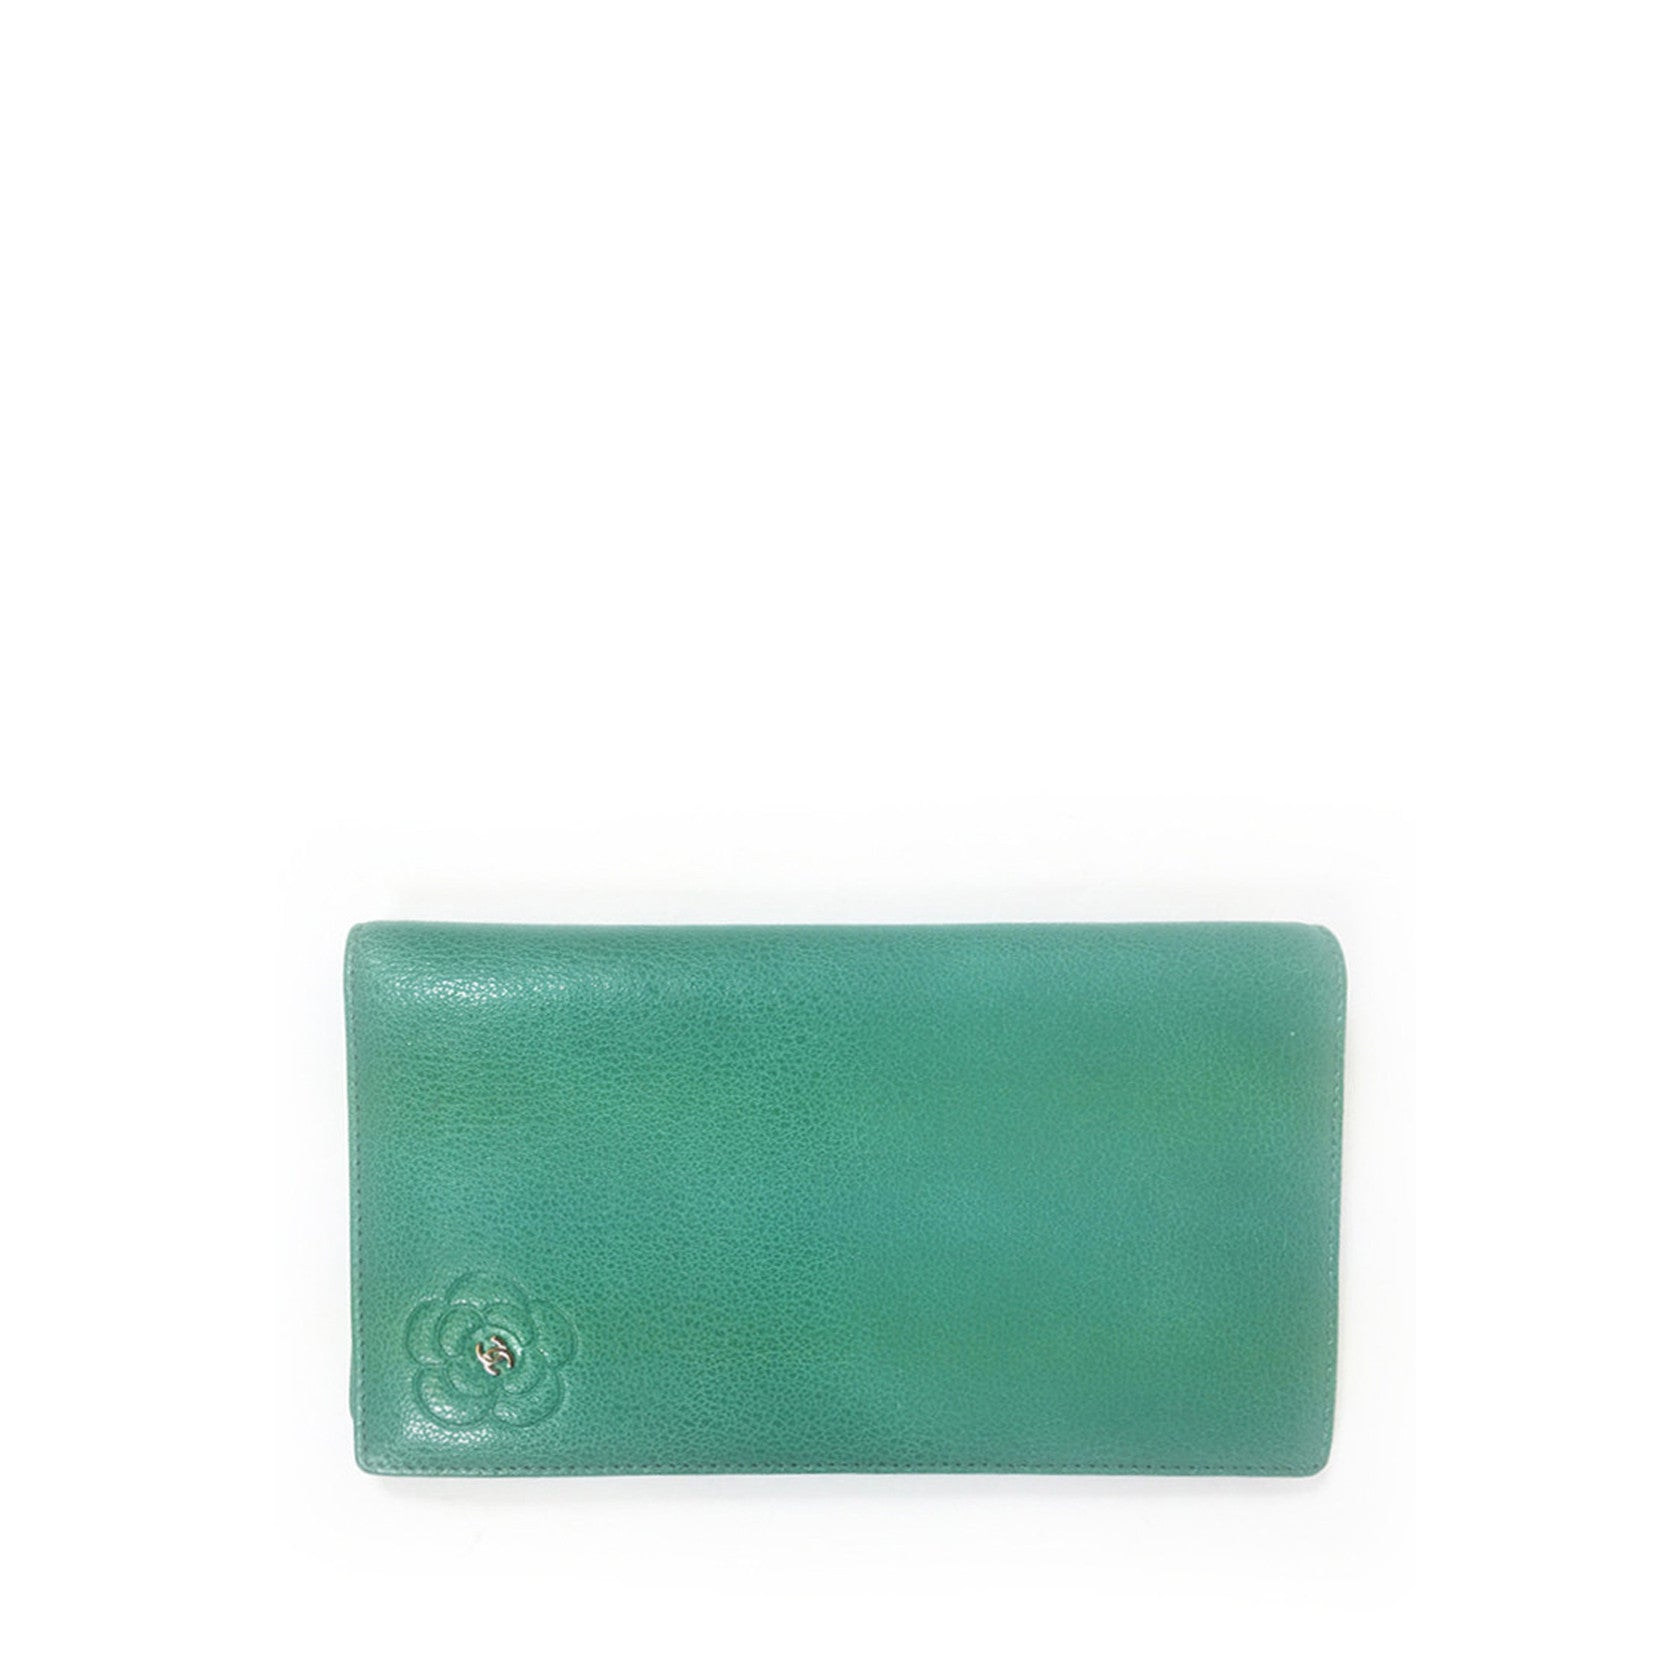 Chanel 2010 Green Leather Camellia Long Flap Wallet - Encore Consignment - 1